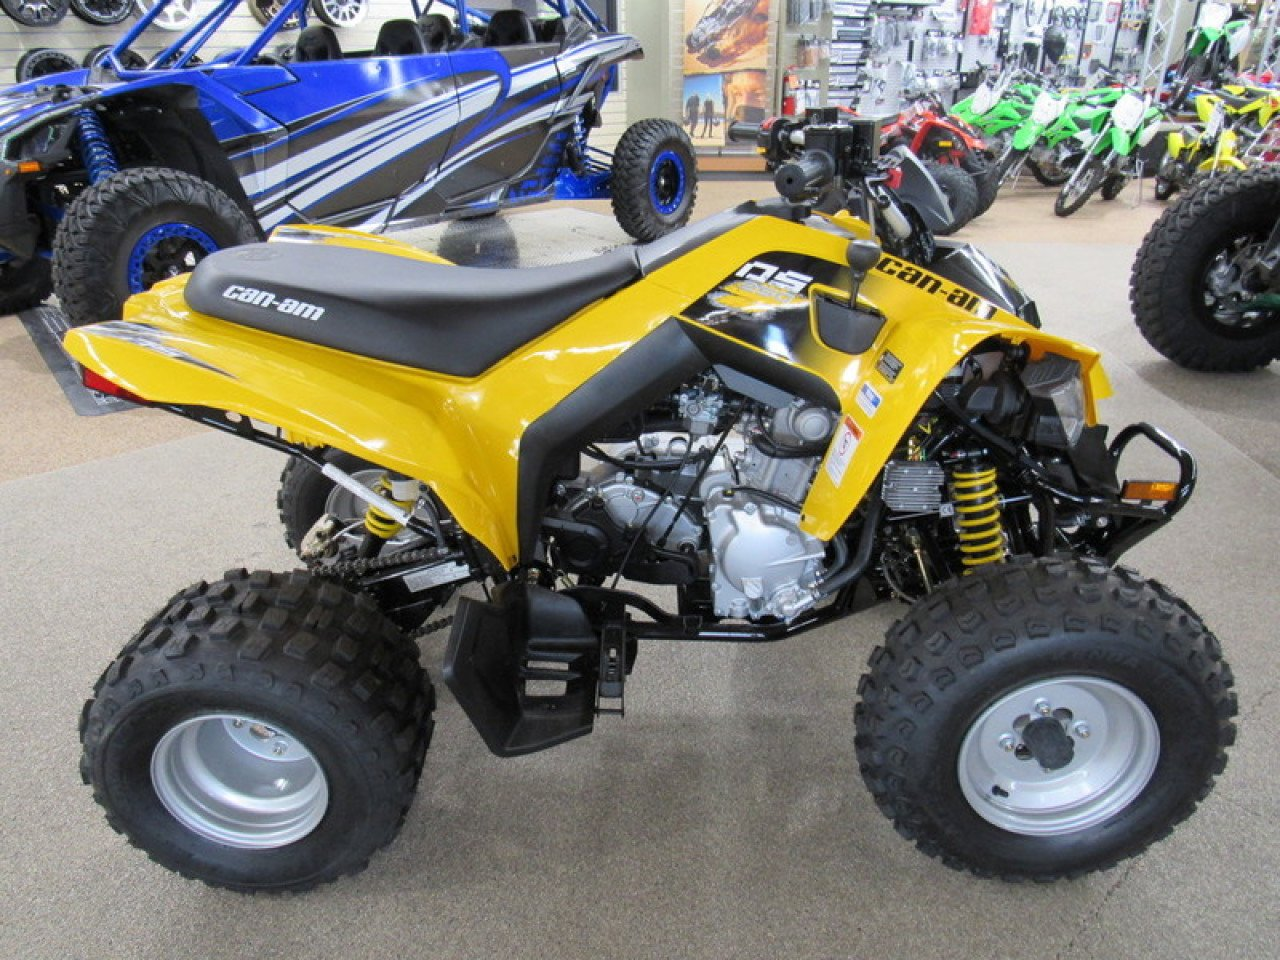 Can Am Atv Goodyear Az >> 2018 Can-Am DS 250 for sale near Goodyear, Arizona 85338 - Motorcycles on Autotrader